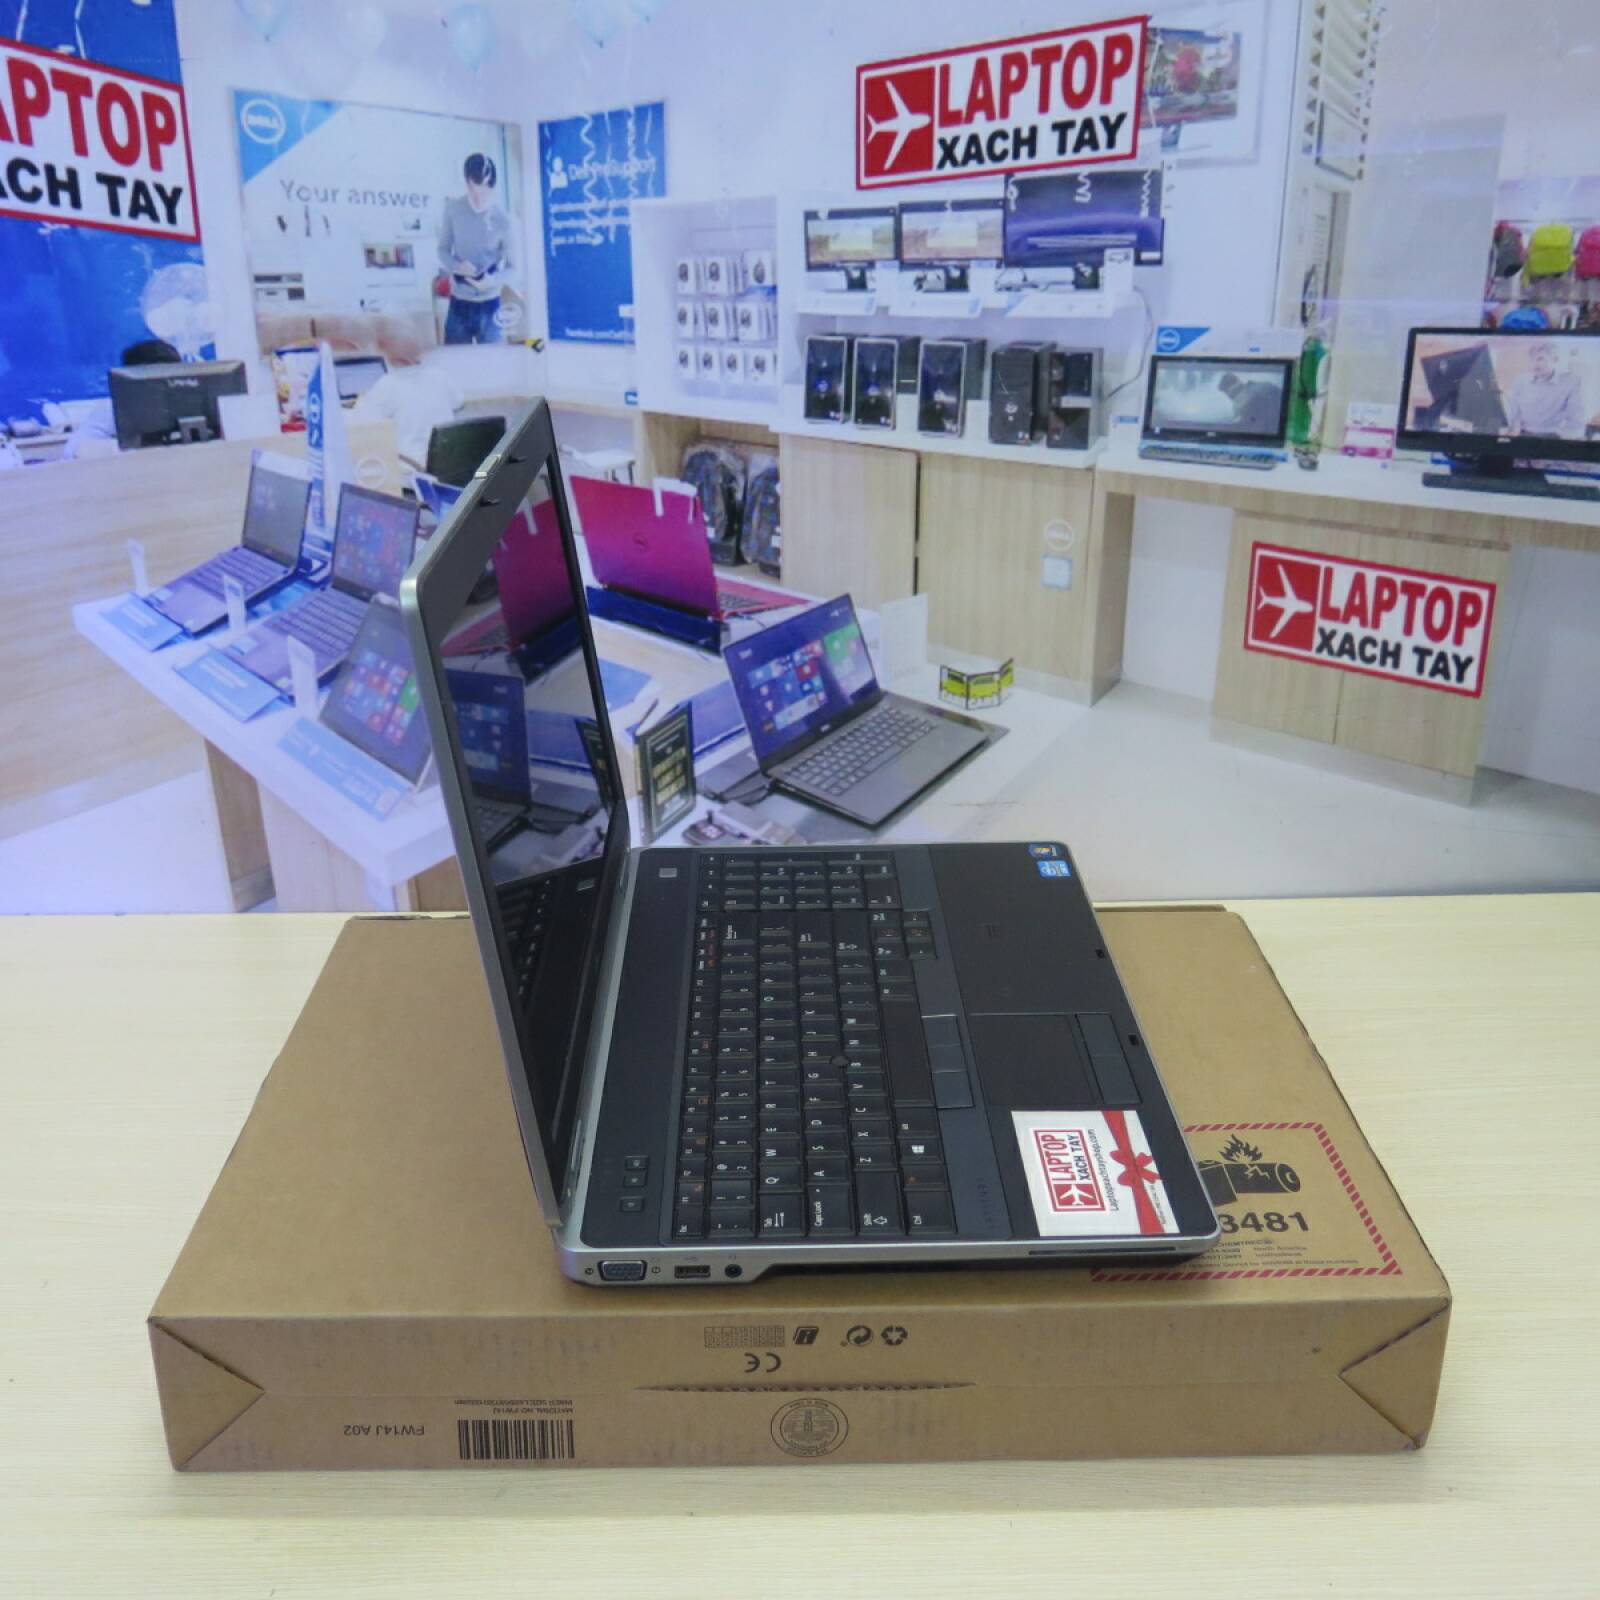 Dell Latitude E6530 - Laptopxachtayshop.com